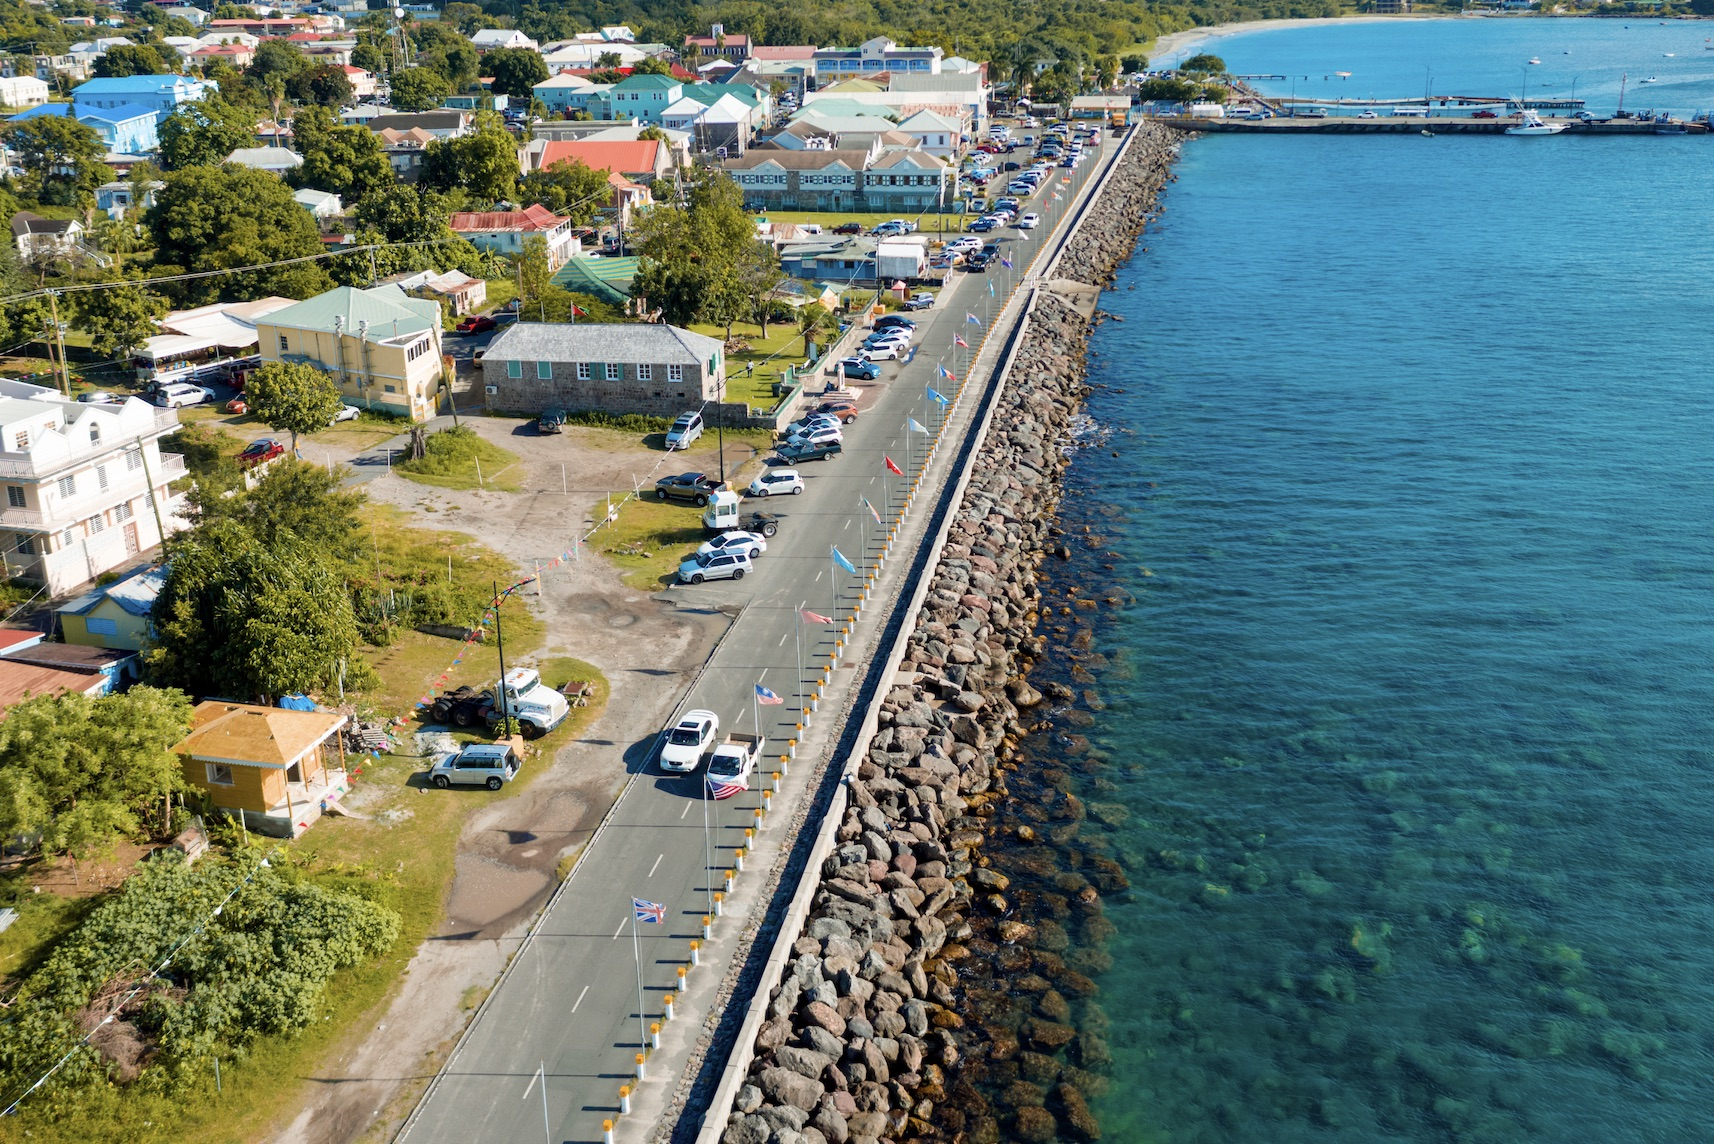 A section of Charlestown the capital of warm and friendly Nevis where the Caribbean Sea laps at her doorstep (photo provided)